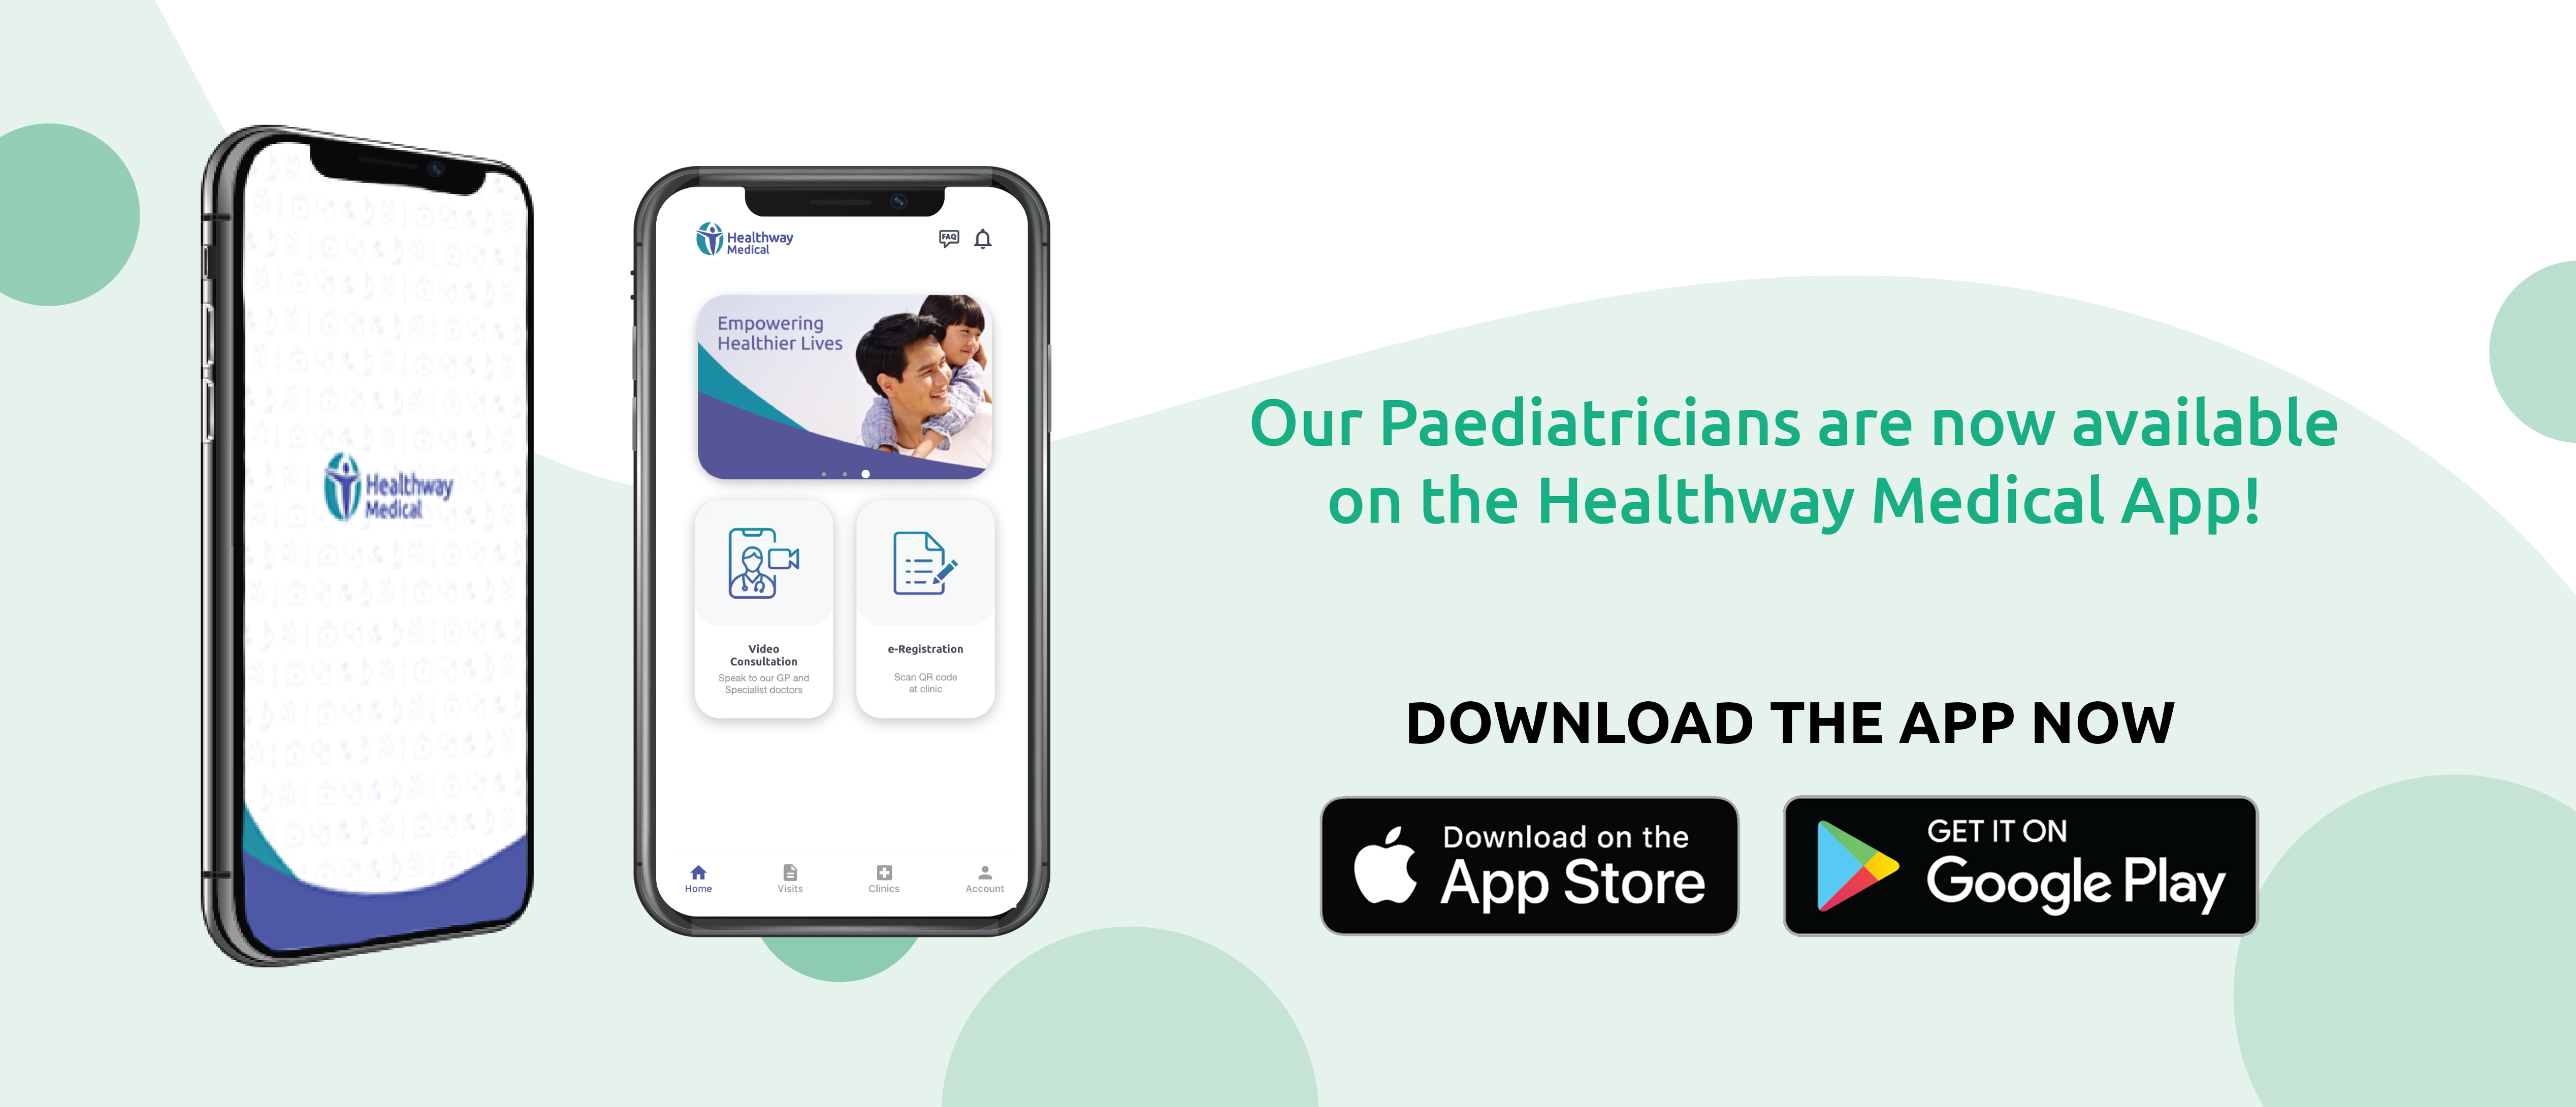 banner image for consult paediatrician online using the healthway medical app